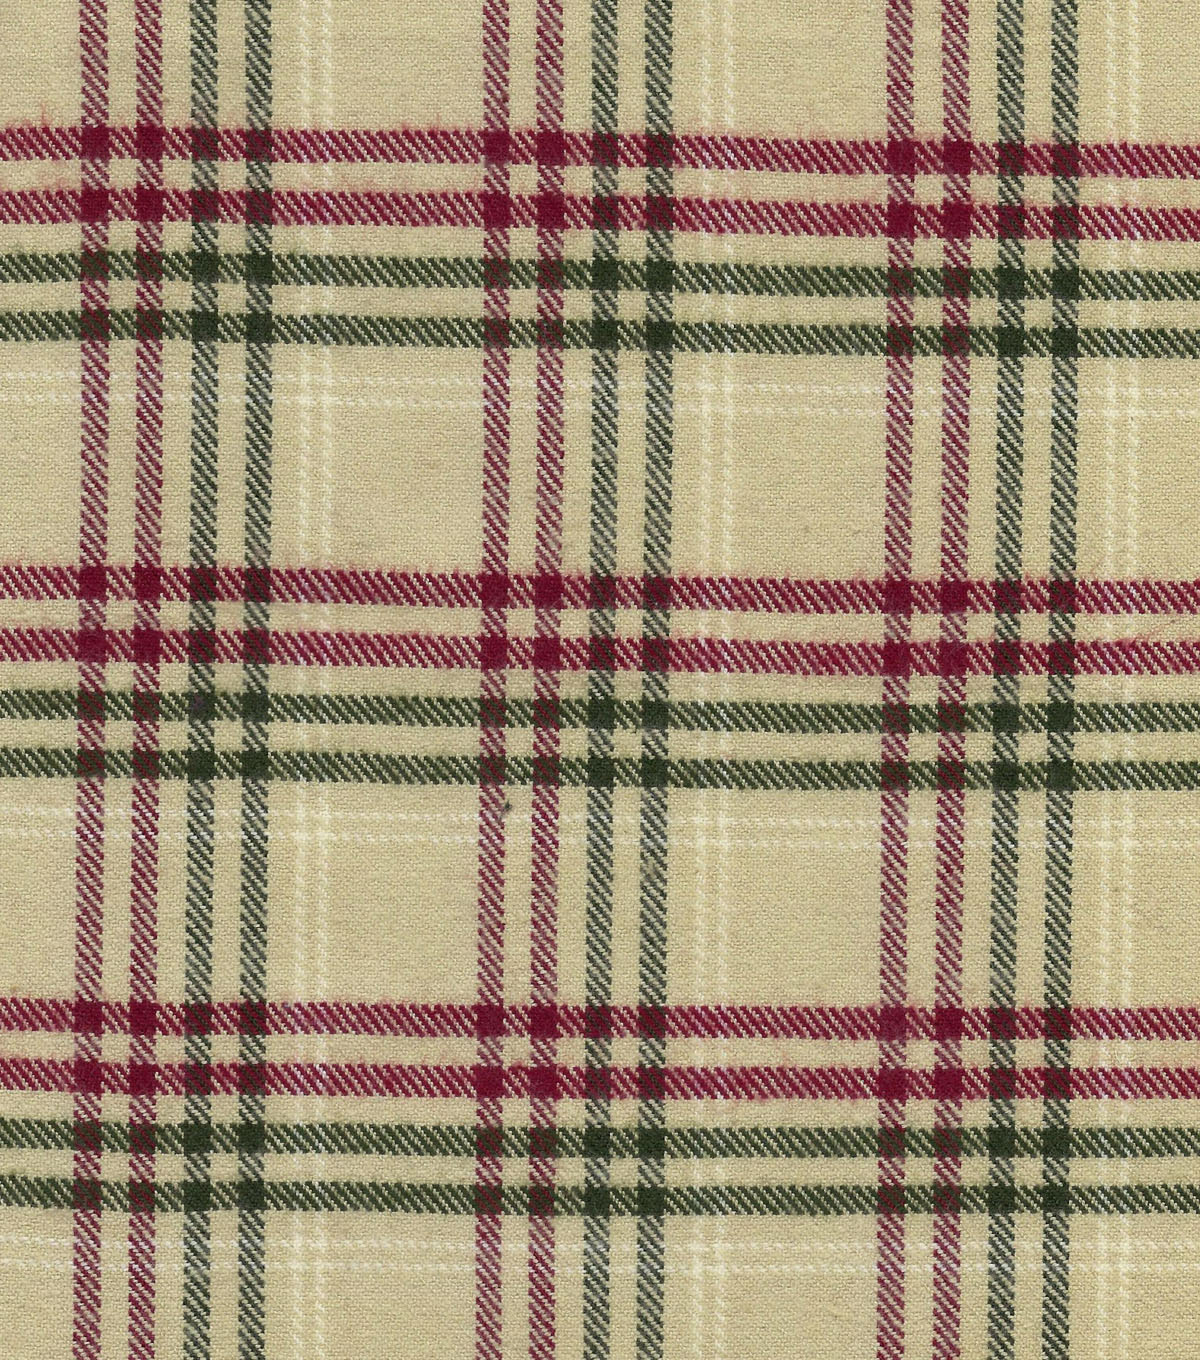 Plaid Brush Cotton Cream Red Olive